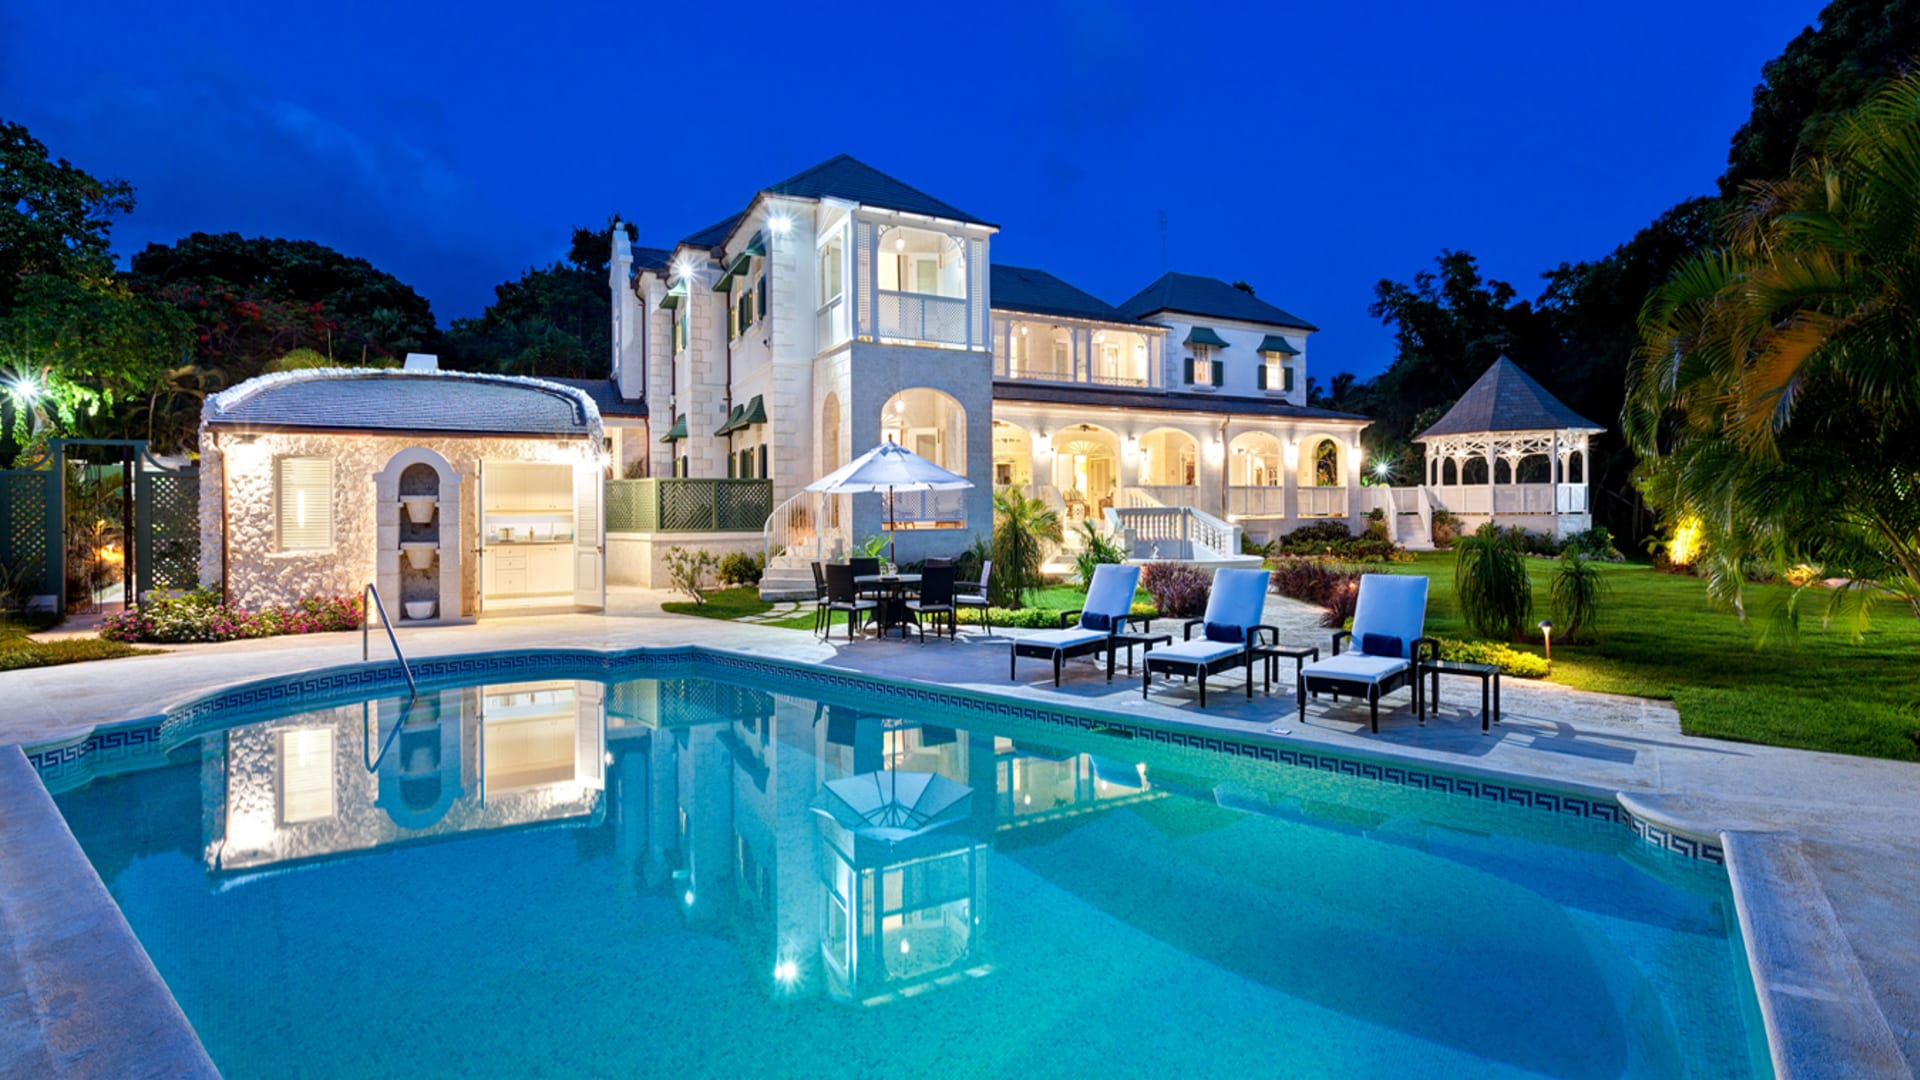 Windward house barbados west coast luxury property for La plus belle maison du monde entier